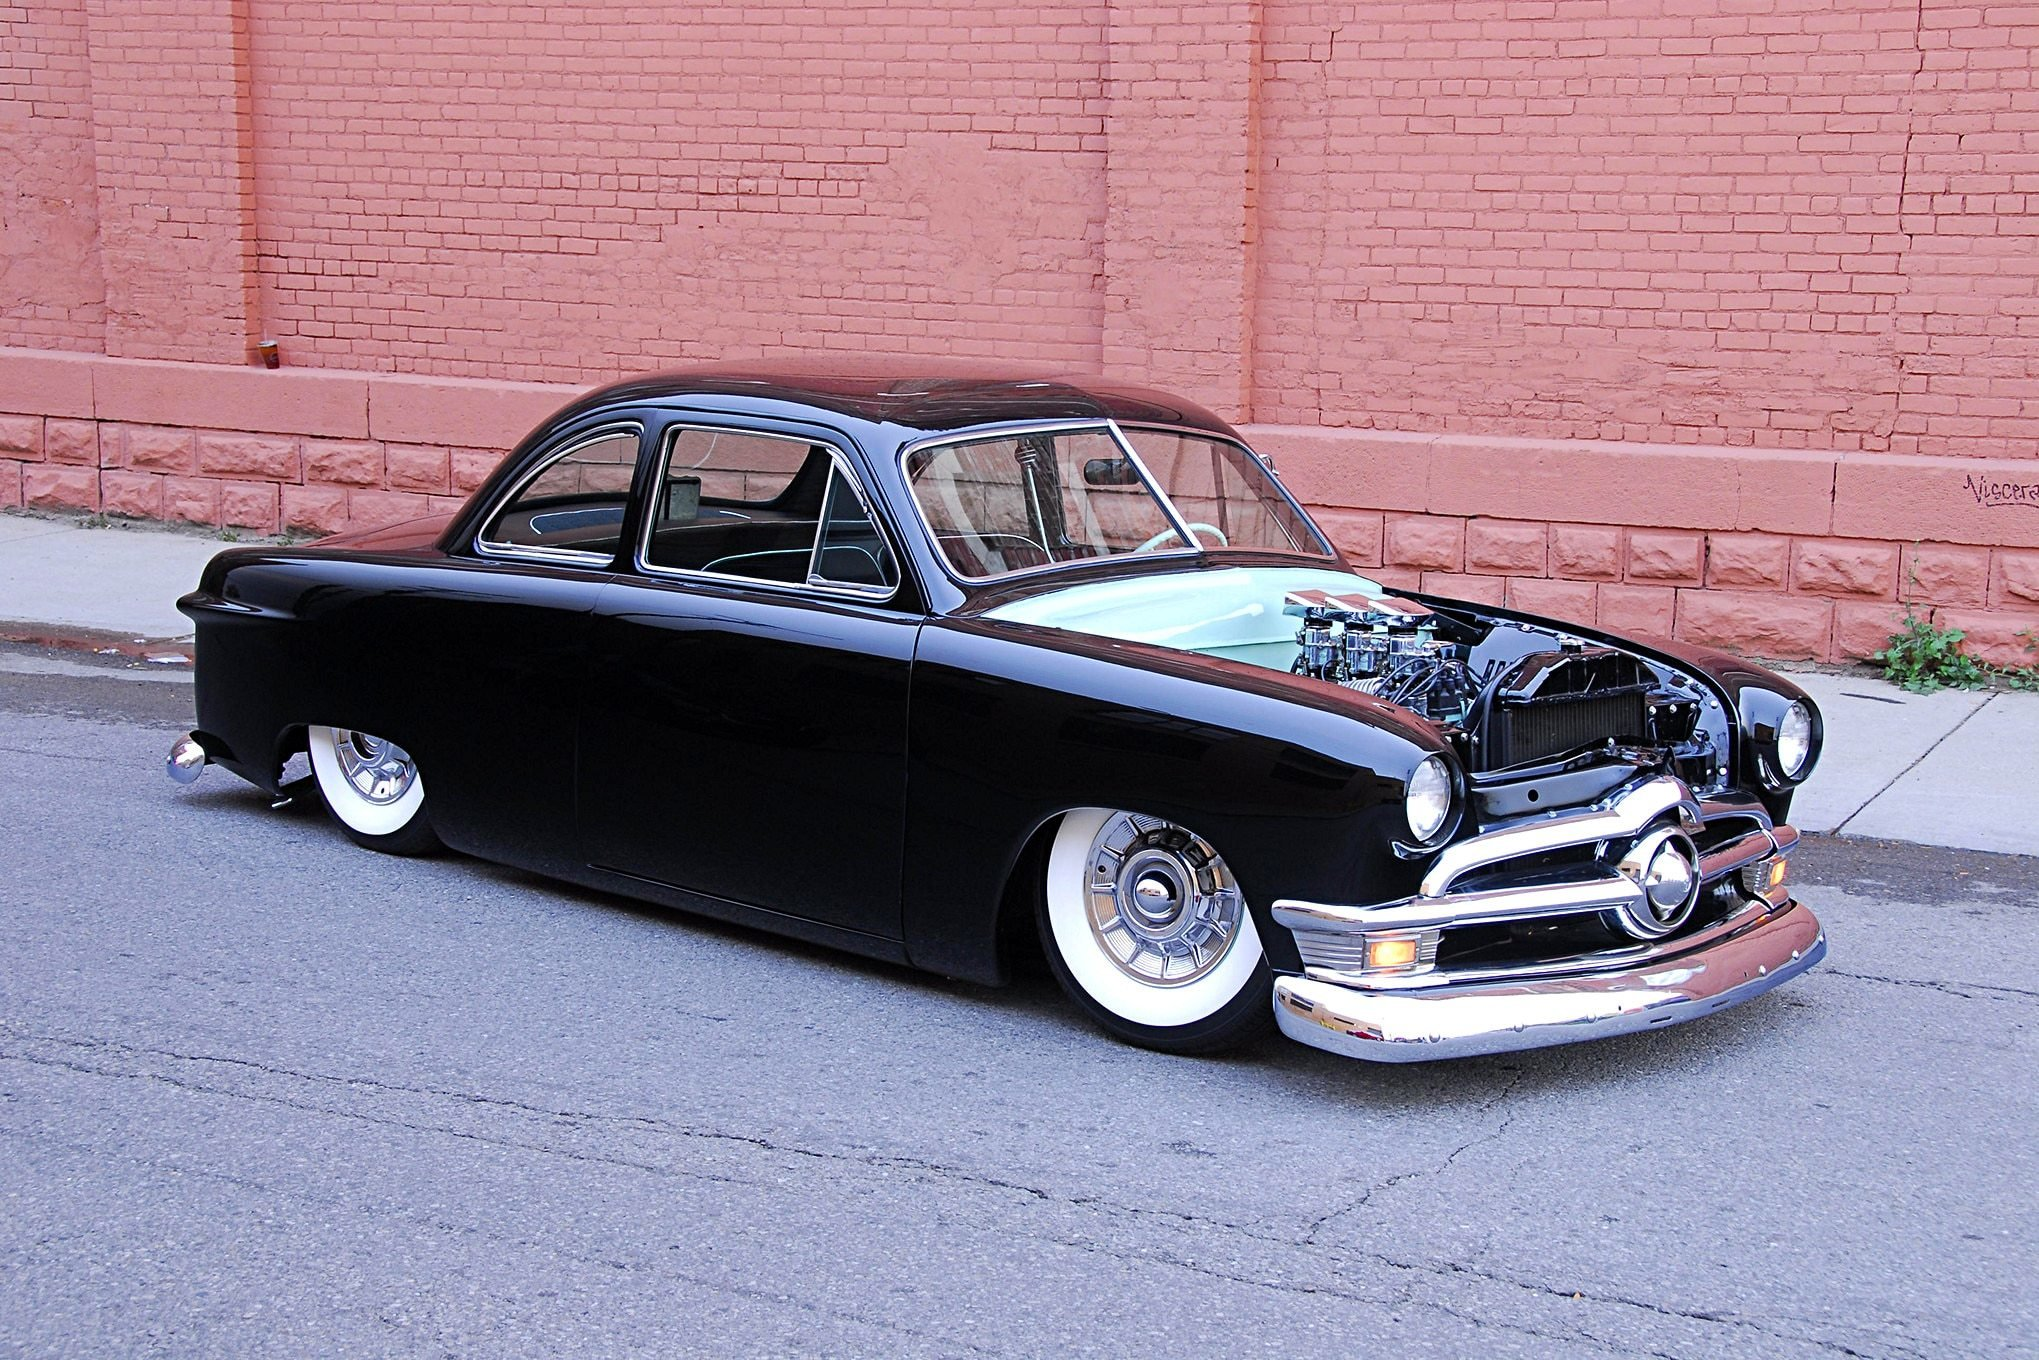 New This Mild Custom 1950 Ford Custom Coupe Has Plenty Of On This Month Original 1024 x 768